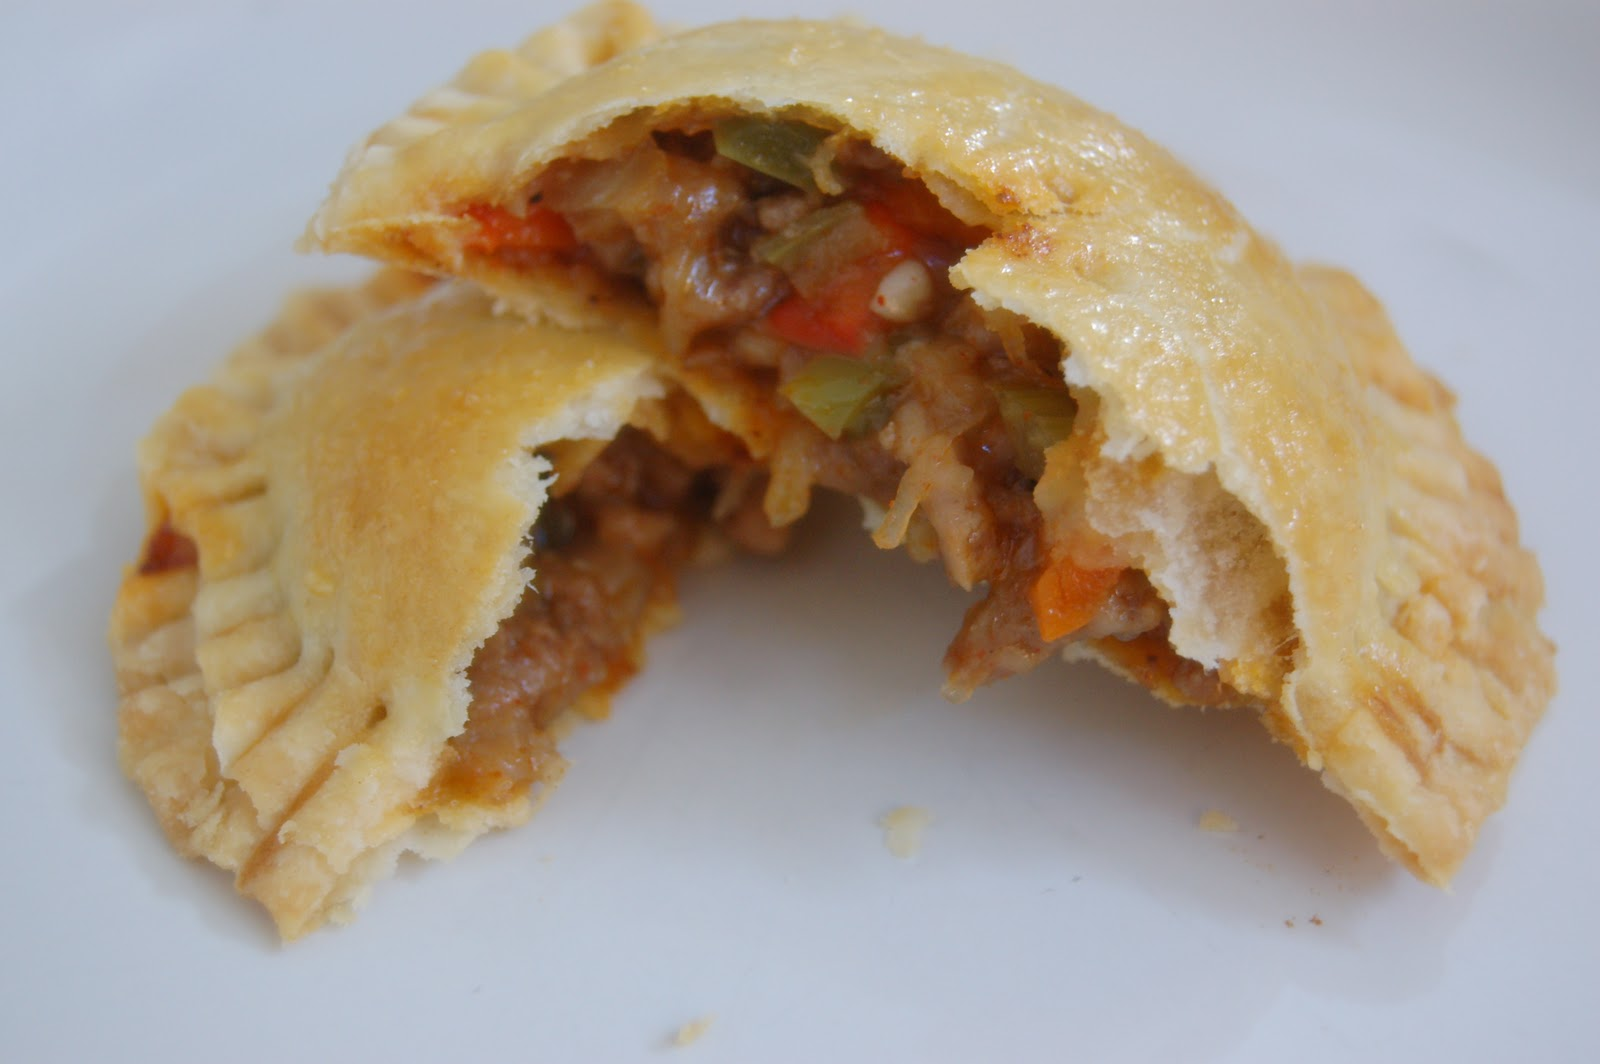 bouffe e bambini: Natchitoches Meat Pies